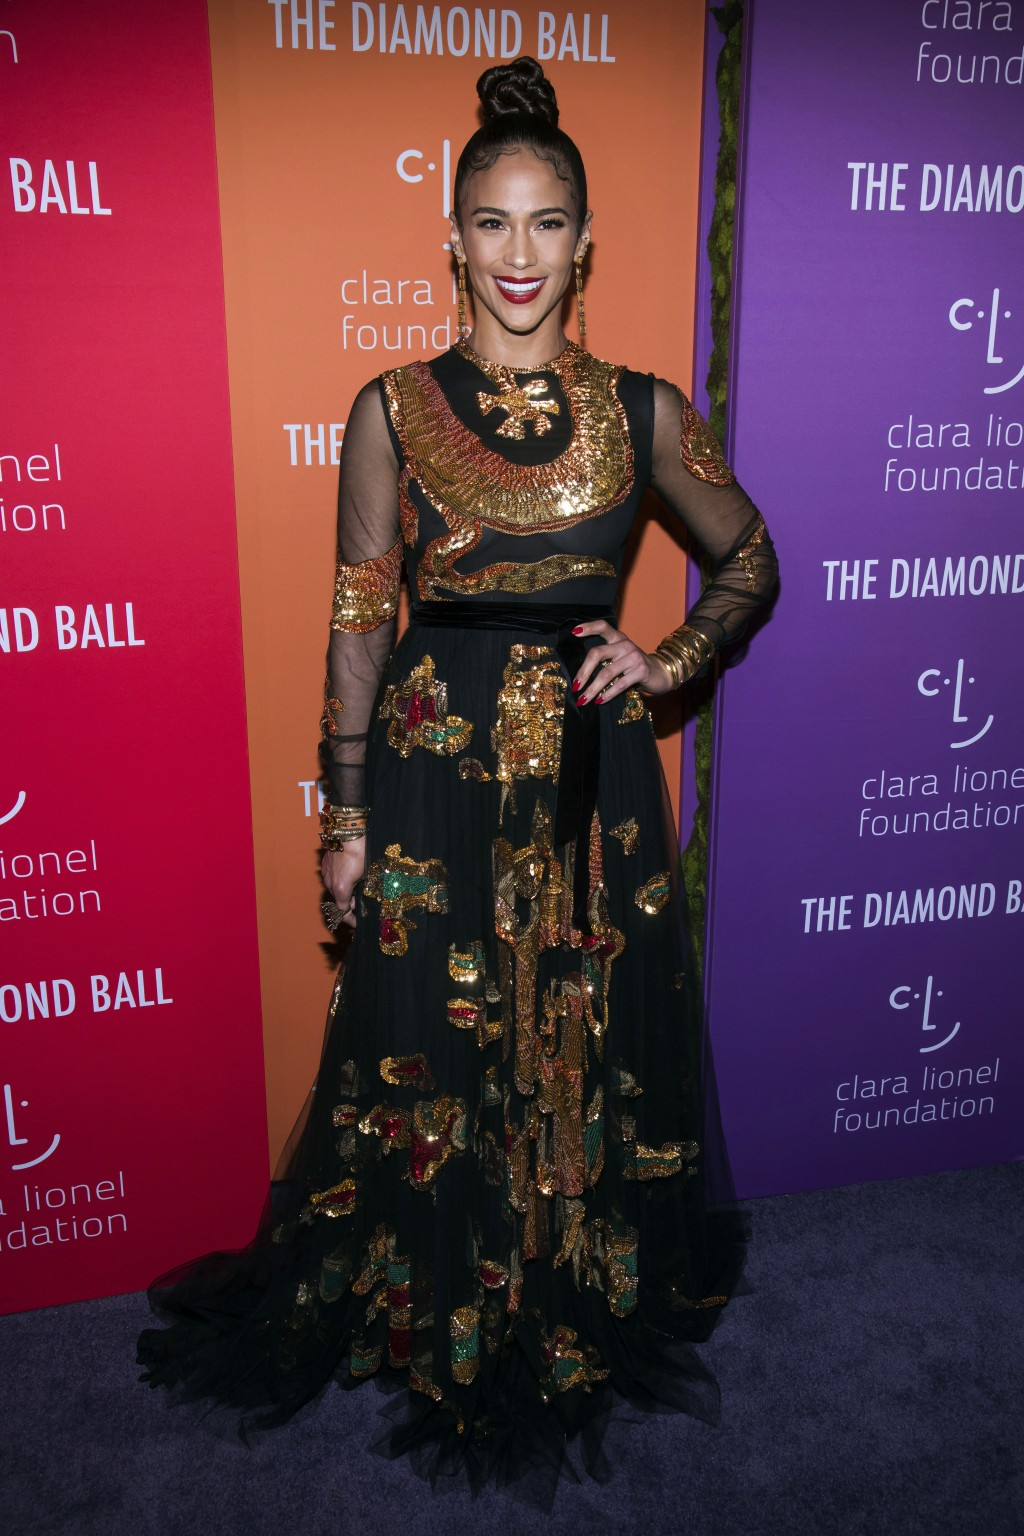 Paula Patton attends the 5th annual Diamond Ball benefit gala at Cipriani Wall Street on Thursday, Sept. 12, 2019, in New York. (Photo by Charles Syke